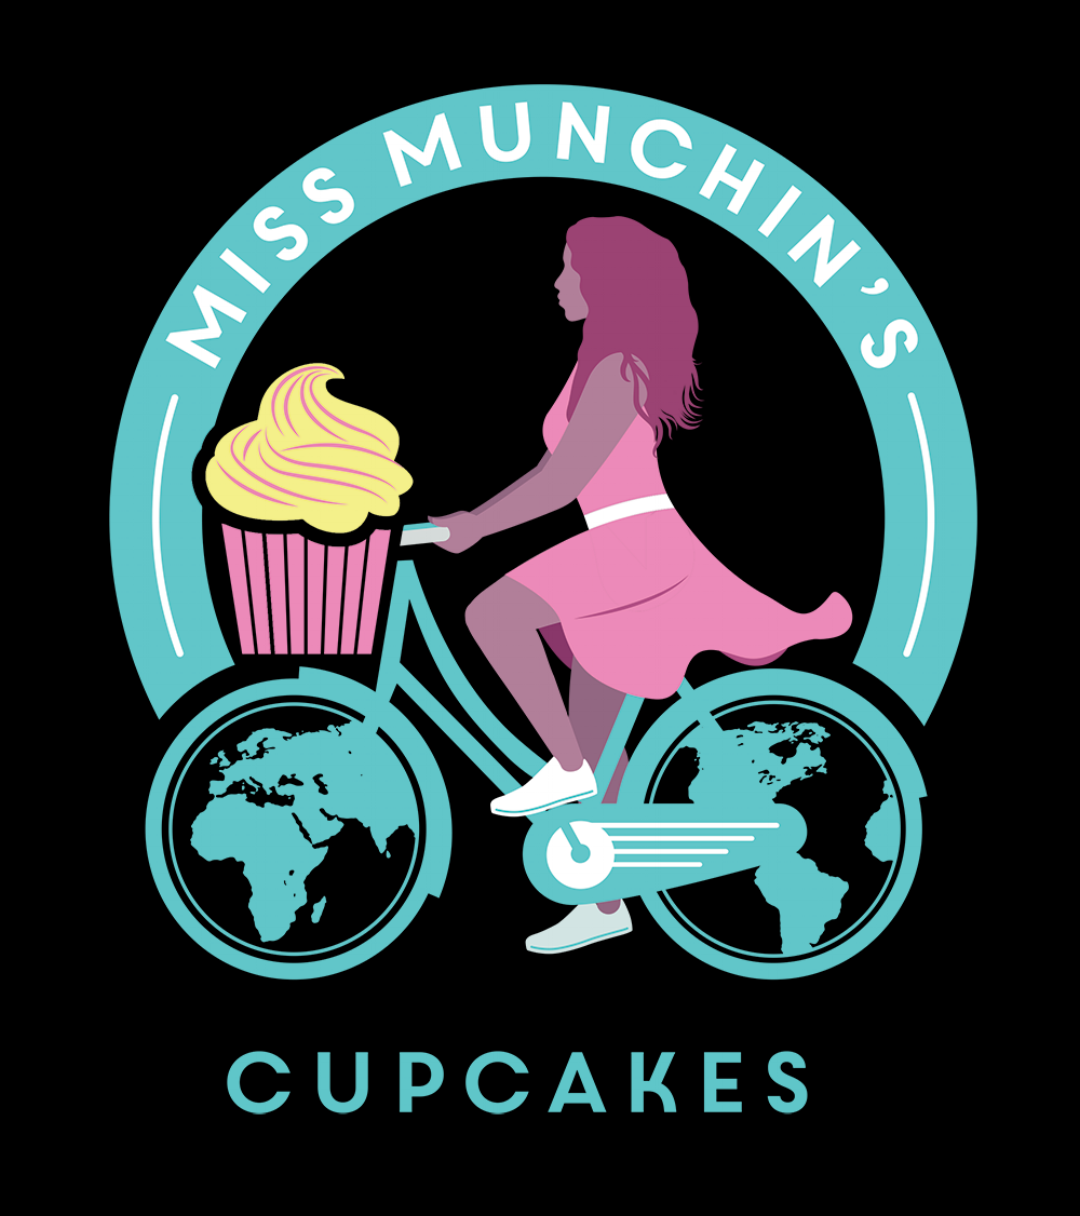 Miss Munchin's Cupcakes